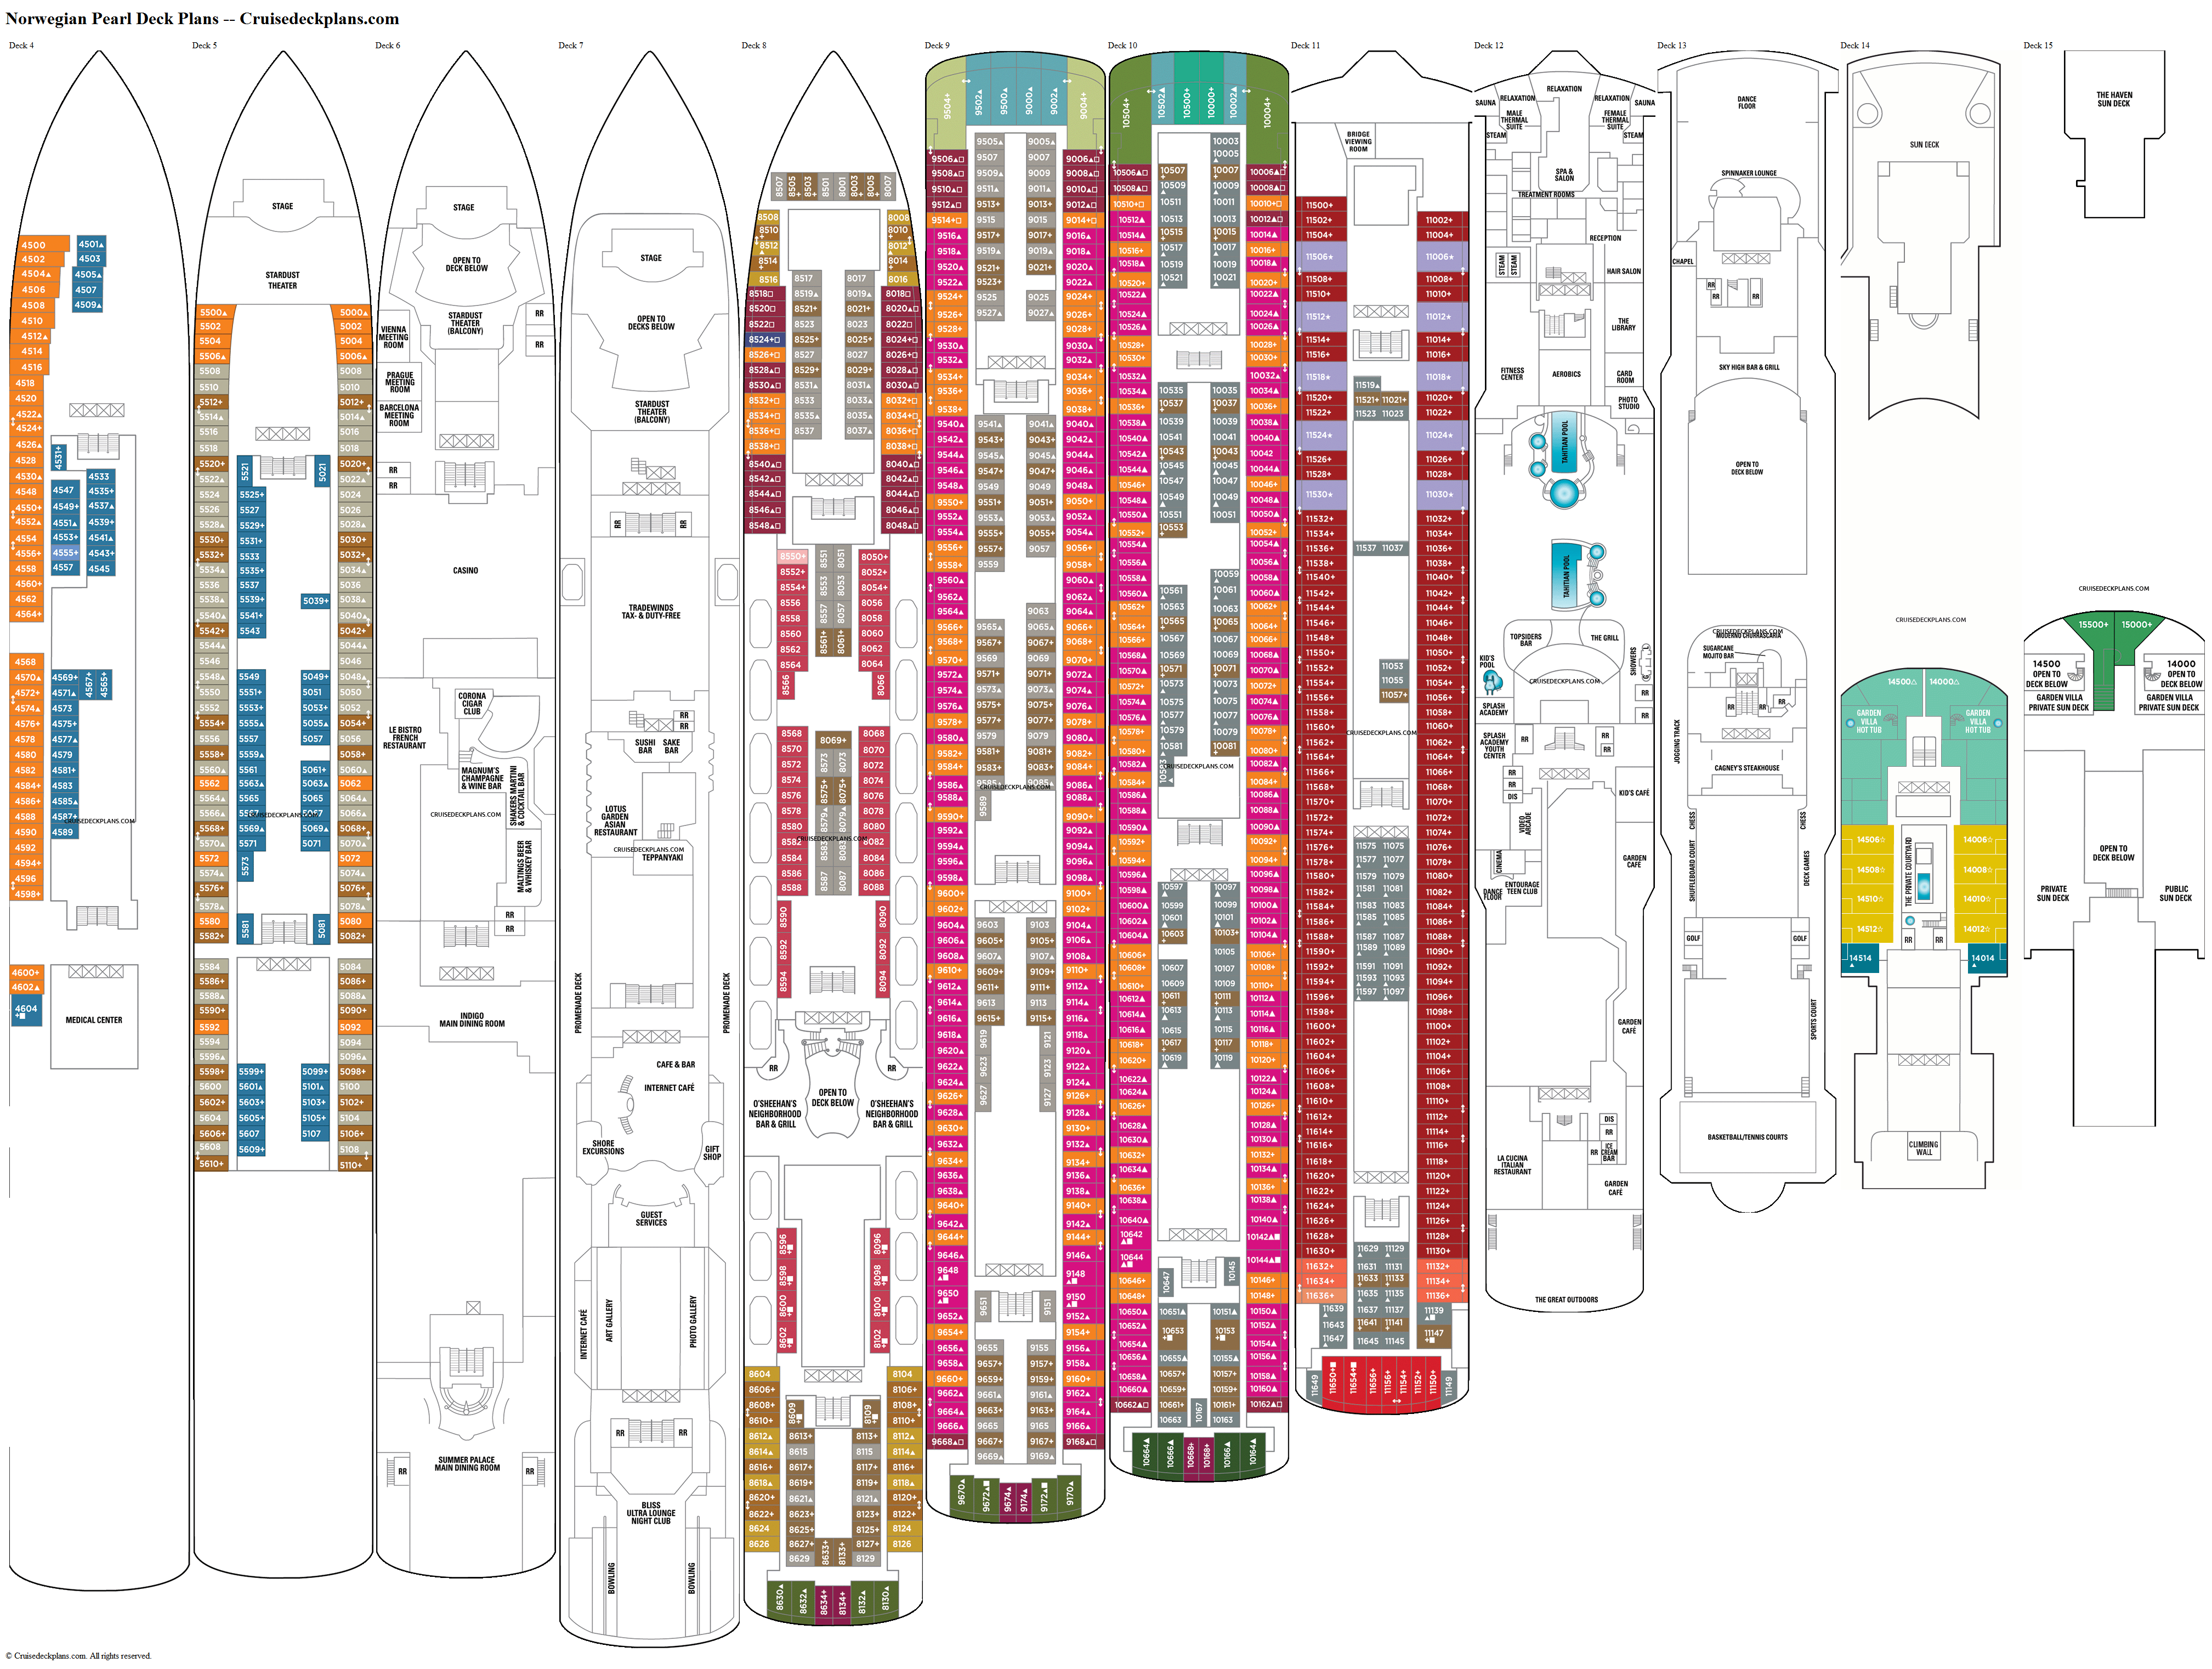 Norwegian Pearl deck plans image